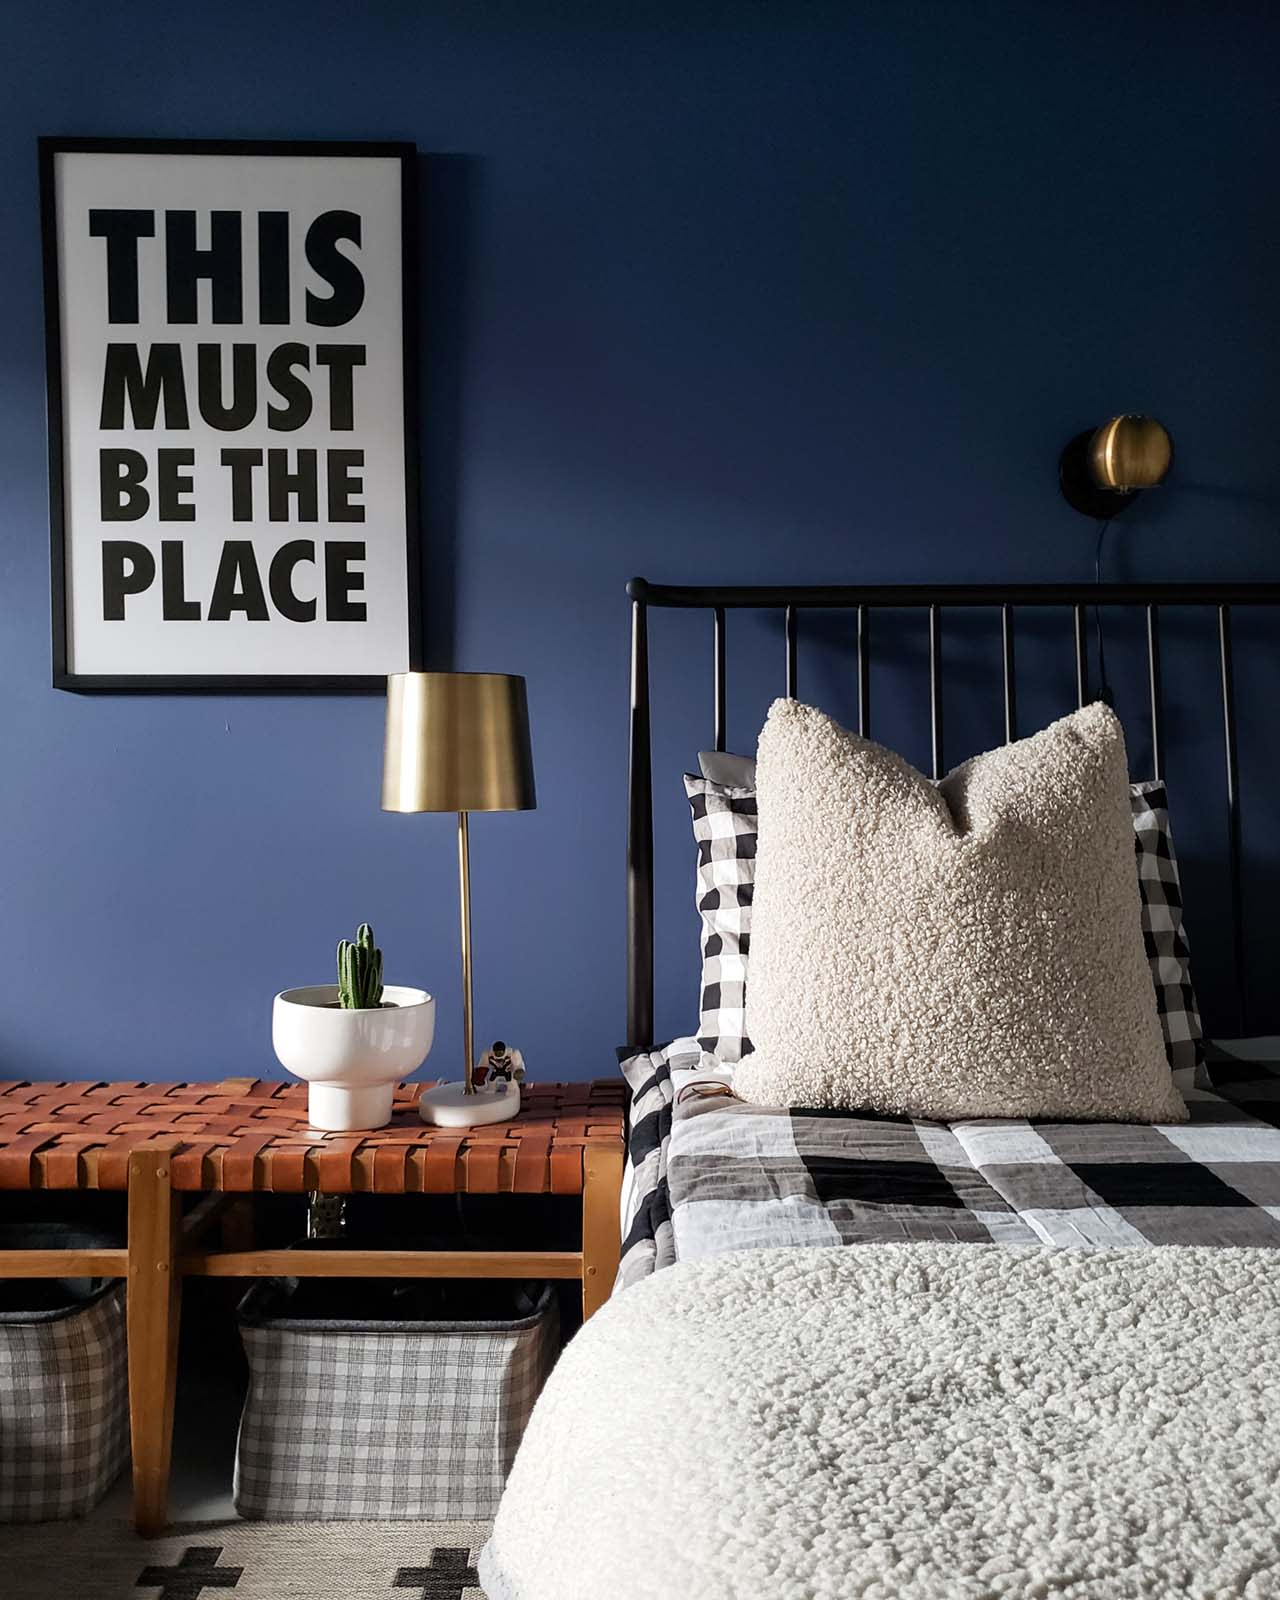 Inspiring boys' bedroom paint ideas are right this way! See how one mom found the perfect blue paint color for her boys' bedroom, plus decor tips galore.